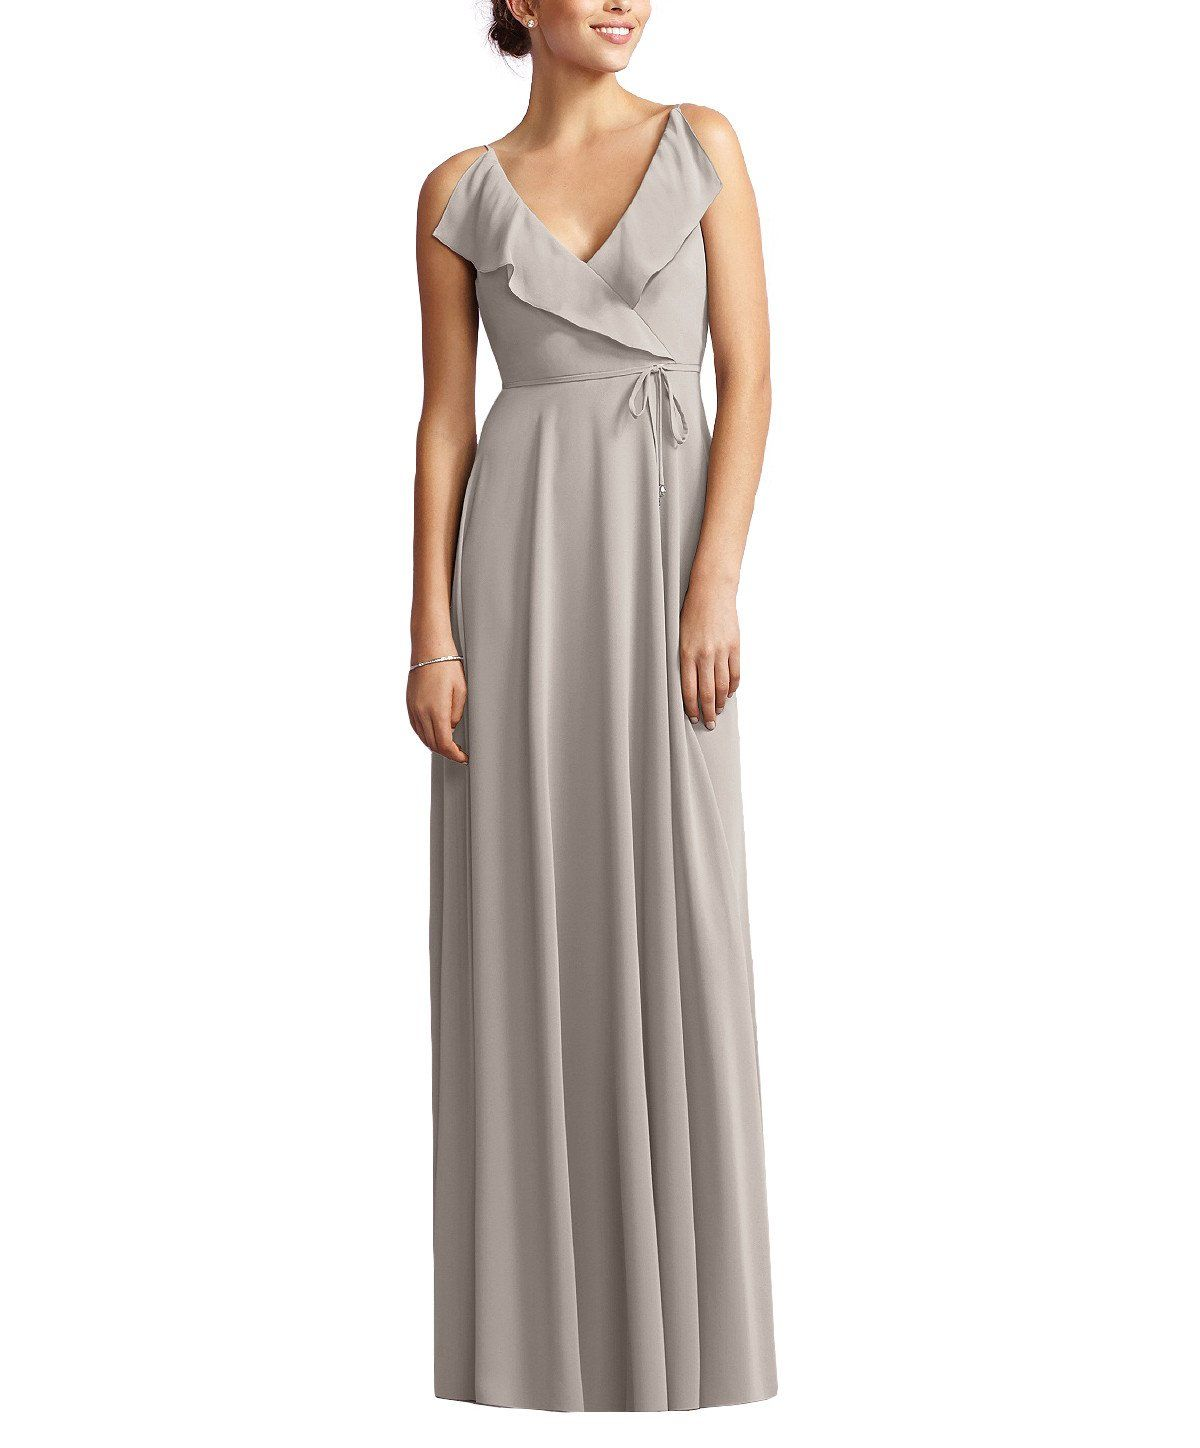 24ef9a64c9f Description - Jenny Yoo by Dessy Style JY517 - Full length bridesmaid dress  - Vneck with soft drape ruffle at front and back neckline - Modified circle  ...